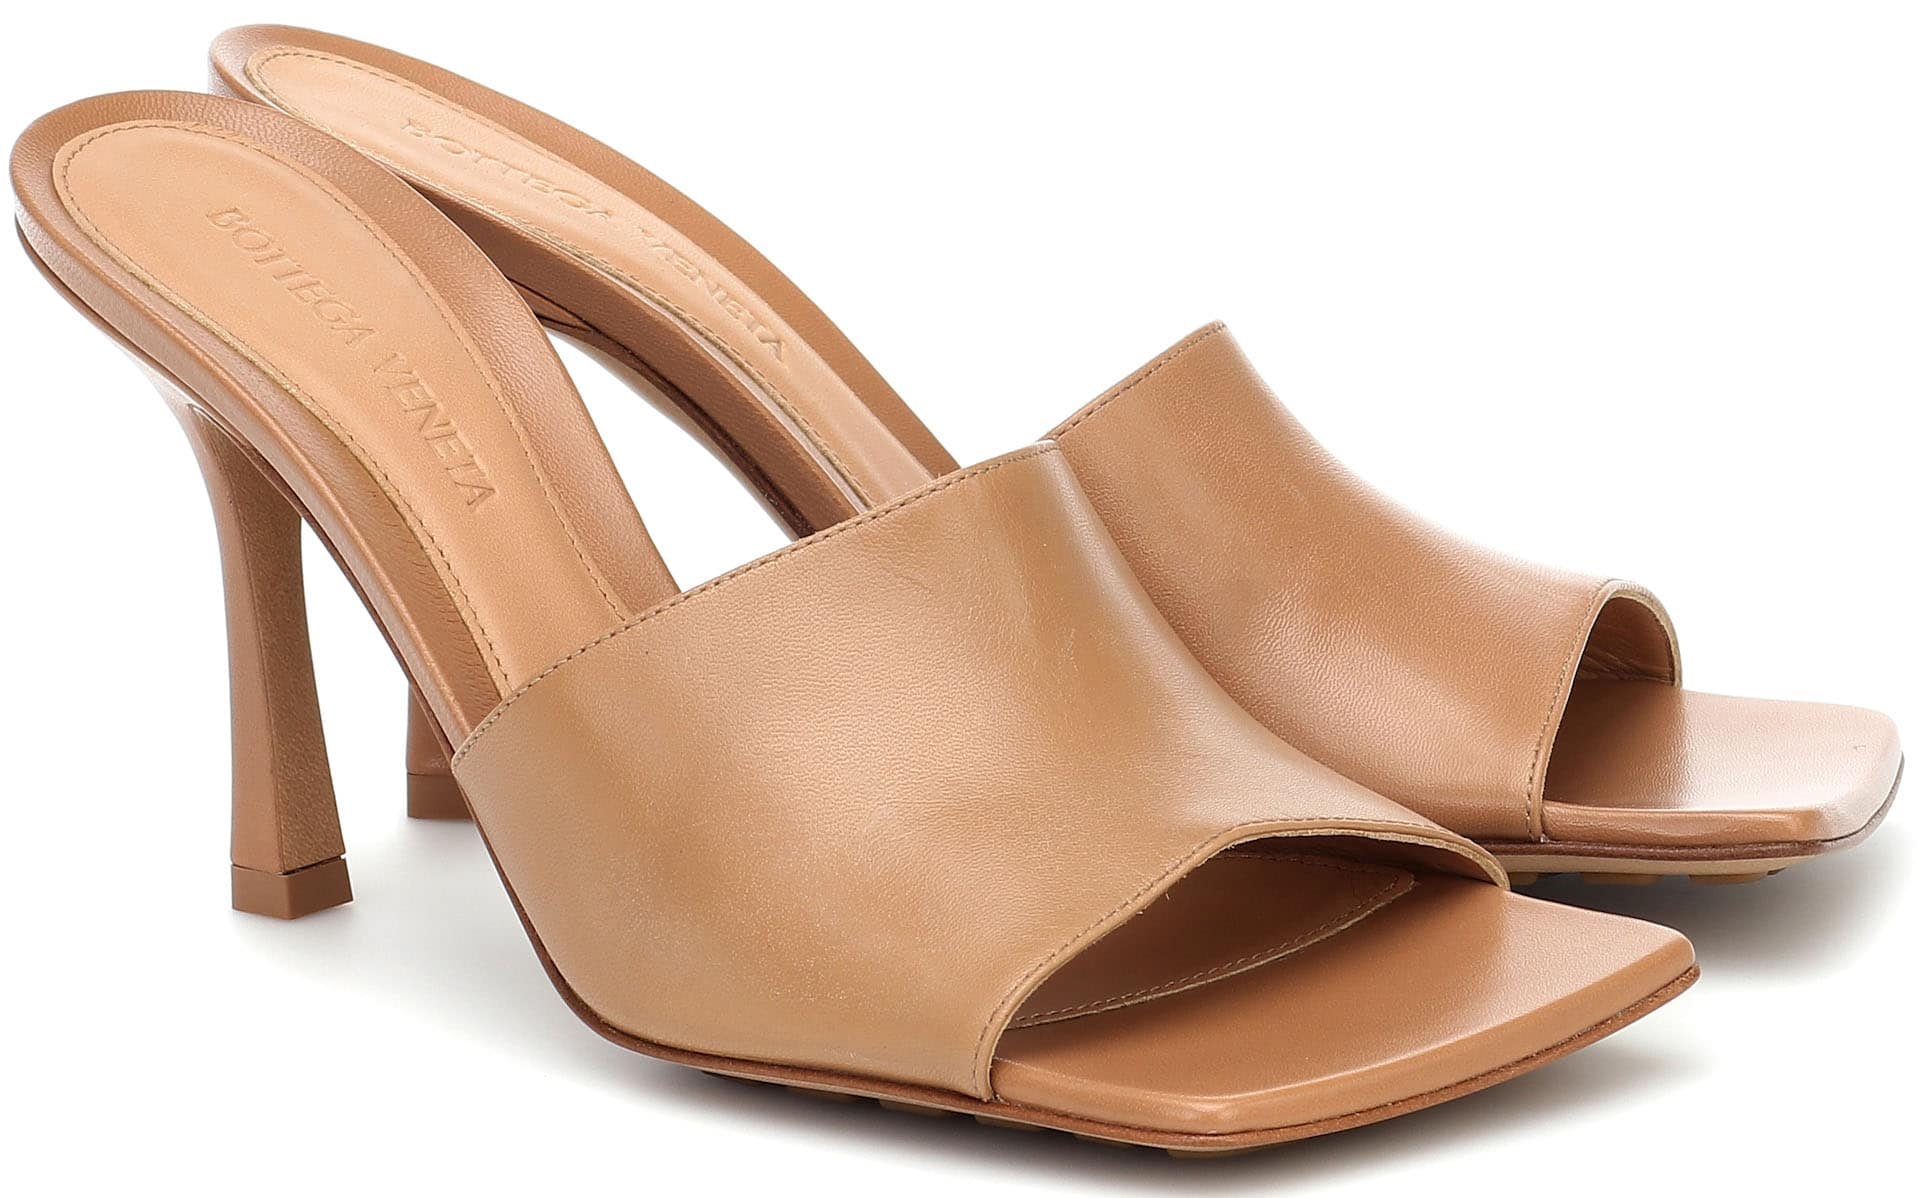 The open square toes add a modern finish to these simple and classic Bottega Veneta Stretch lamb leather slip-on sandals